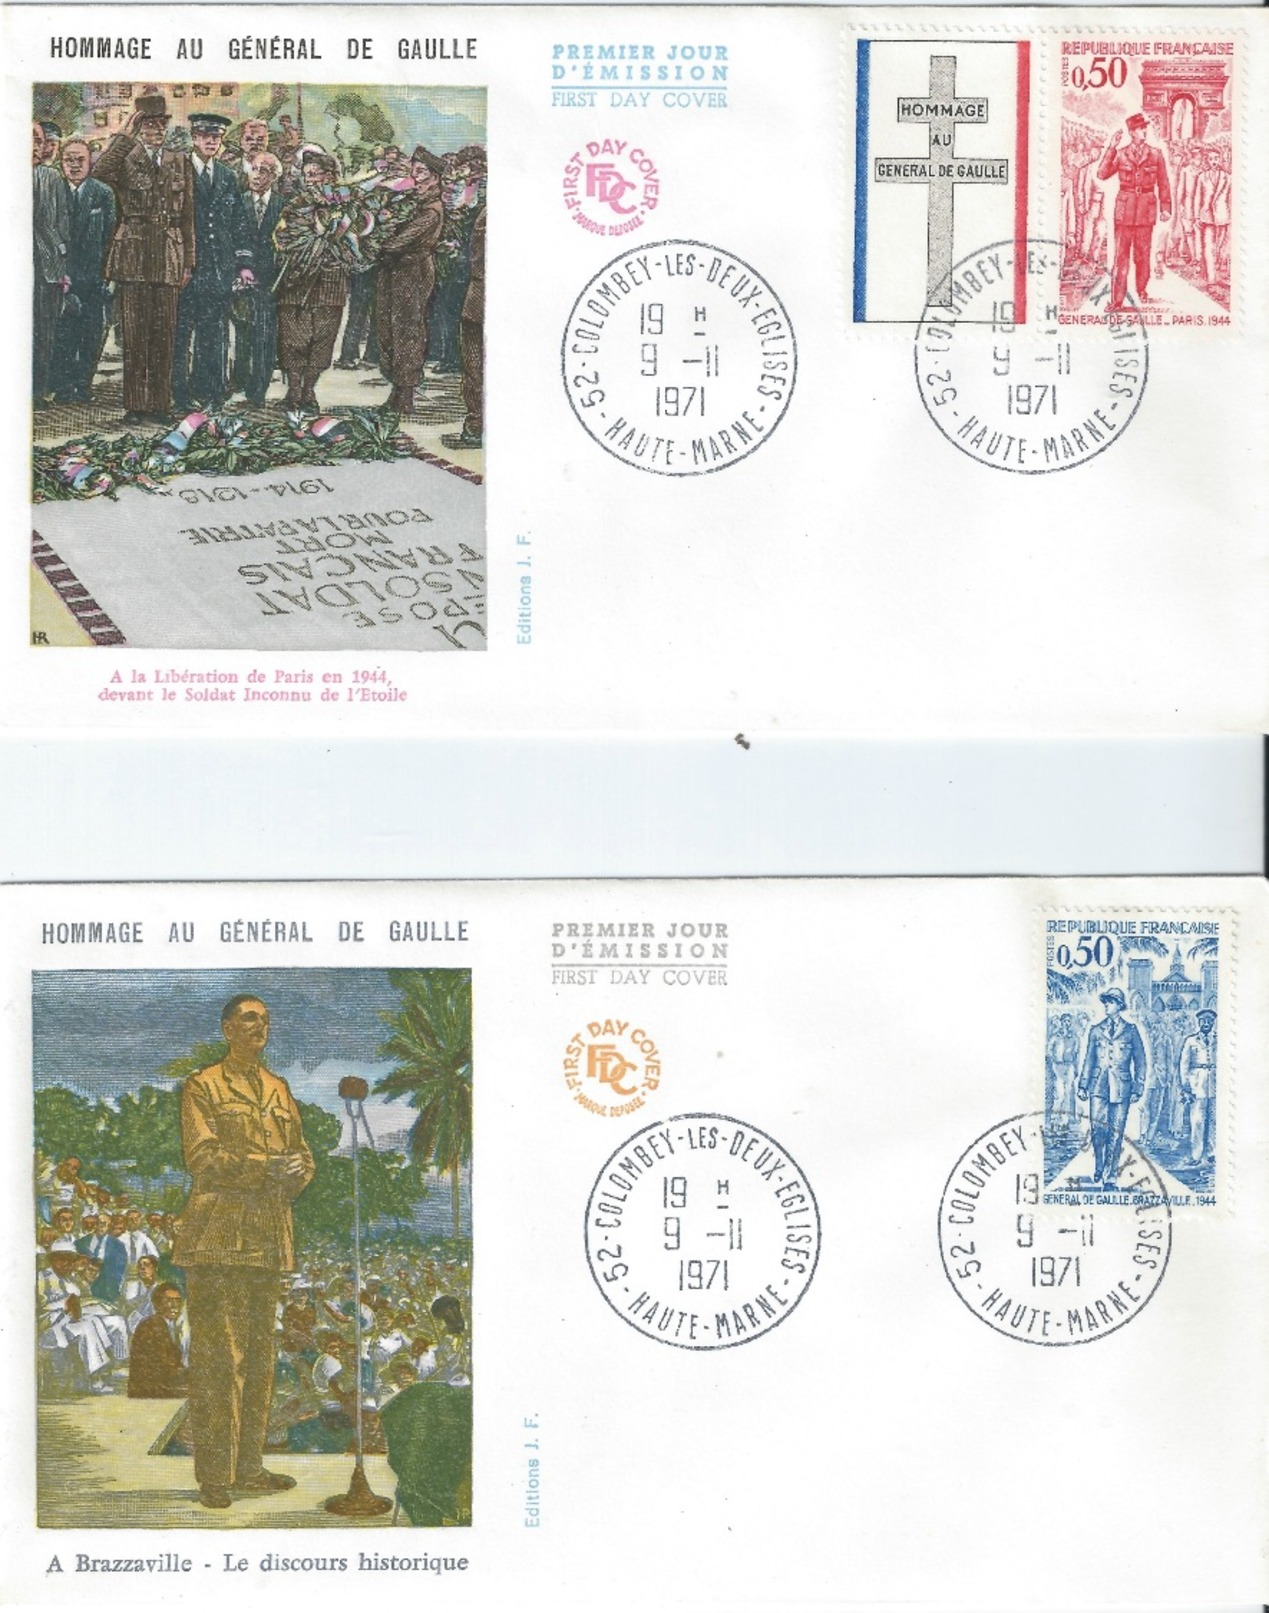 FRANCE 2 X Charles De Gaulle Colour Illustrated Homage Scarce 1971 FDC - FDC